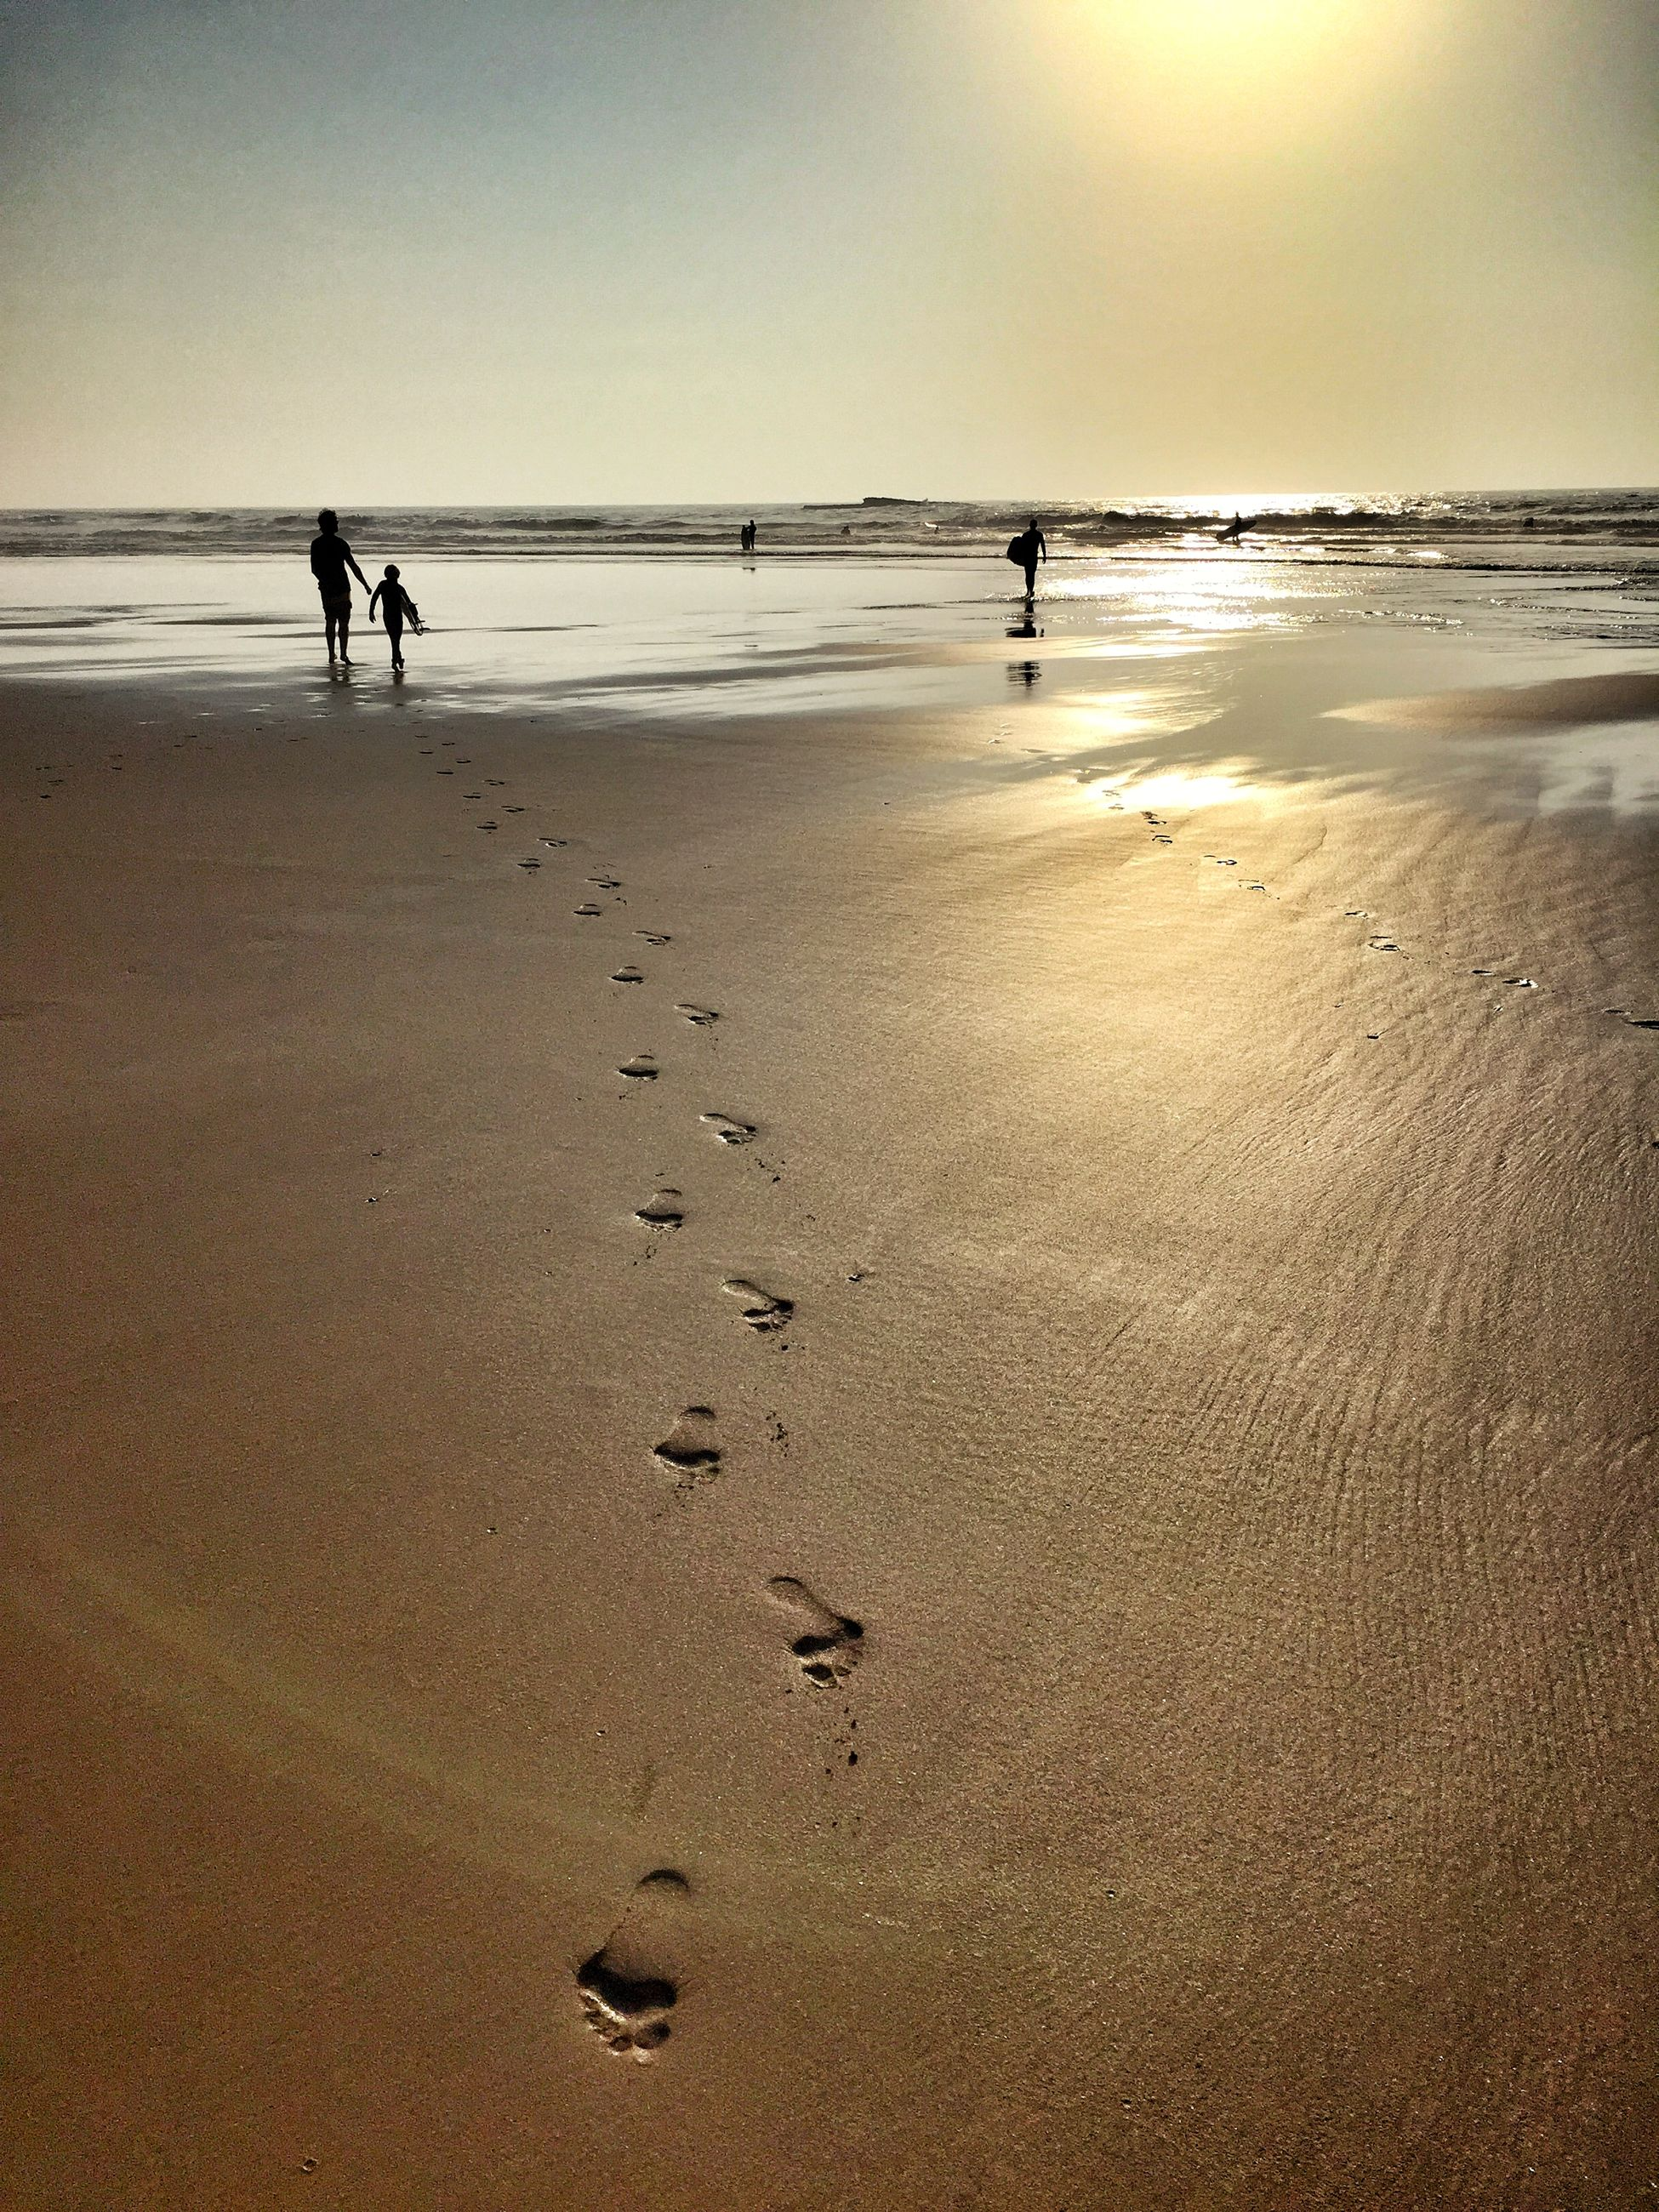 beach, sea, sand, shore, horizon over water, water, tranquil scene, tranquility, scenics, vacations, walking, leisure activity, wave, beauty in nature, silhouette, nature, sunset, lifestyles, sky